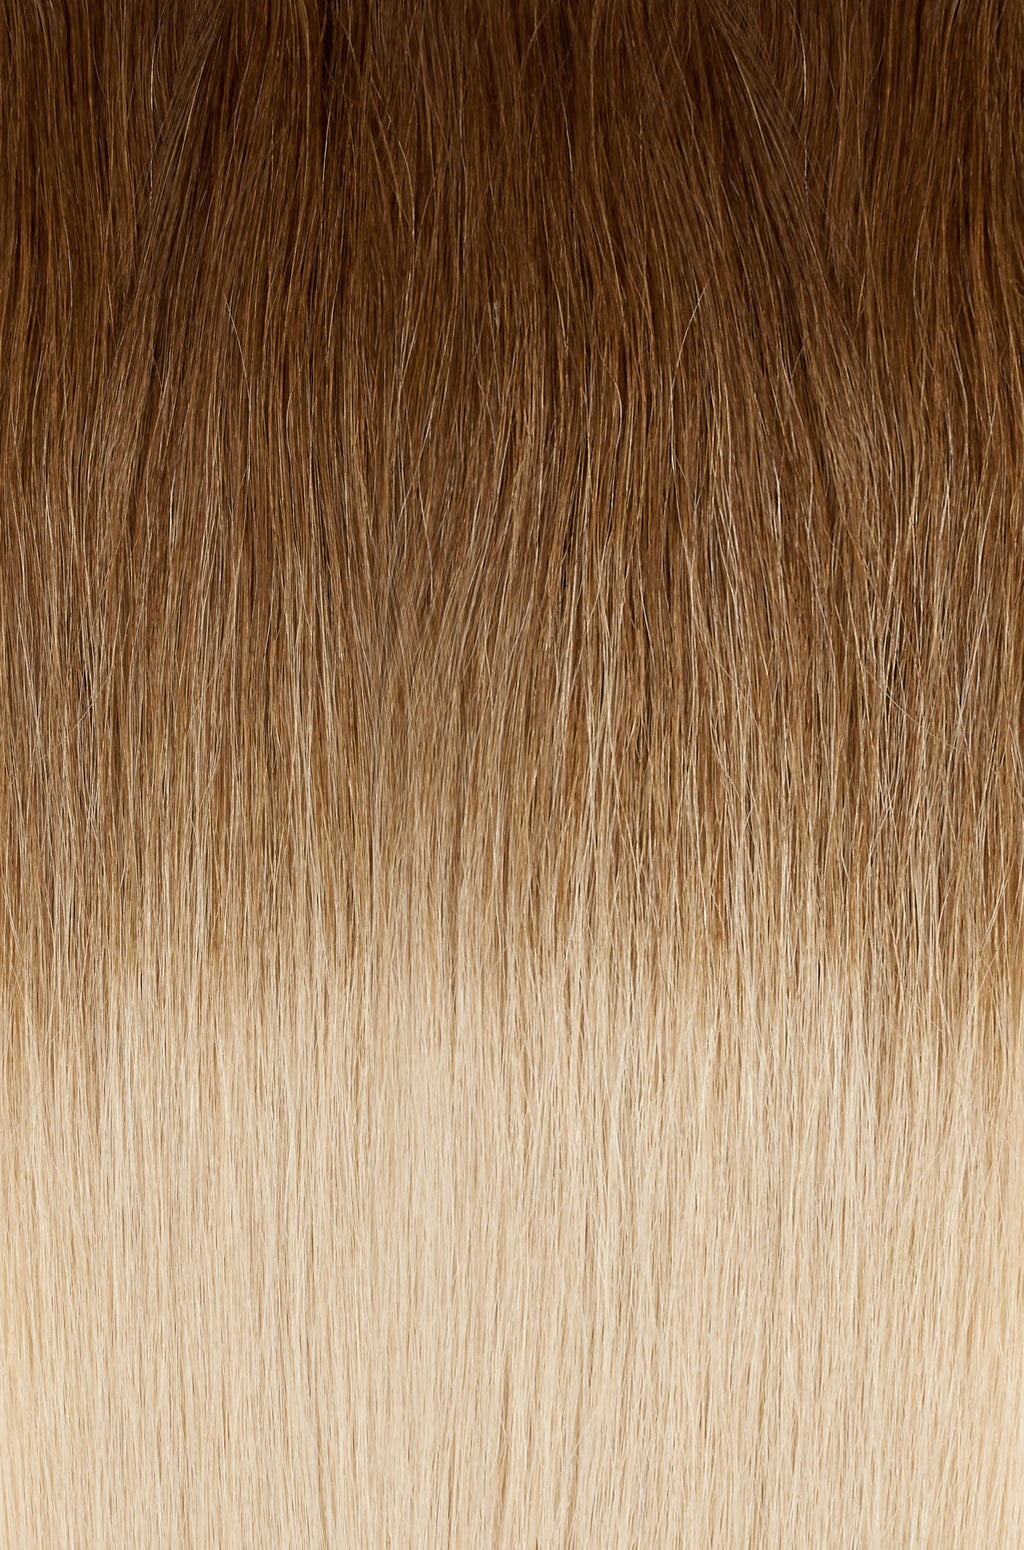 "Ombre - Caramel Brown (#4) to Dirty Blonde (#18B) 22"" Tape- ON BACKORDER"